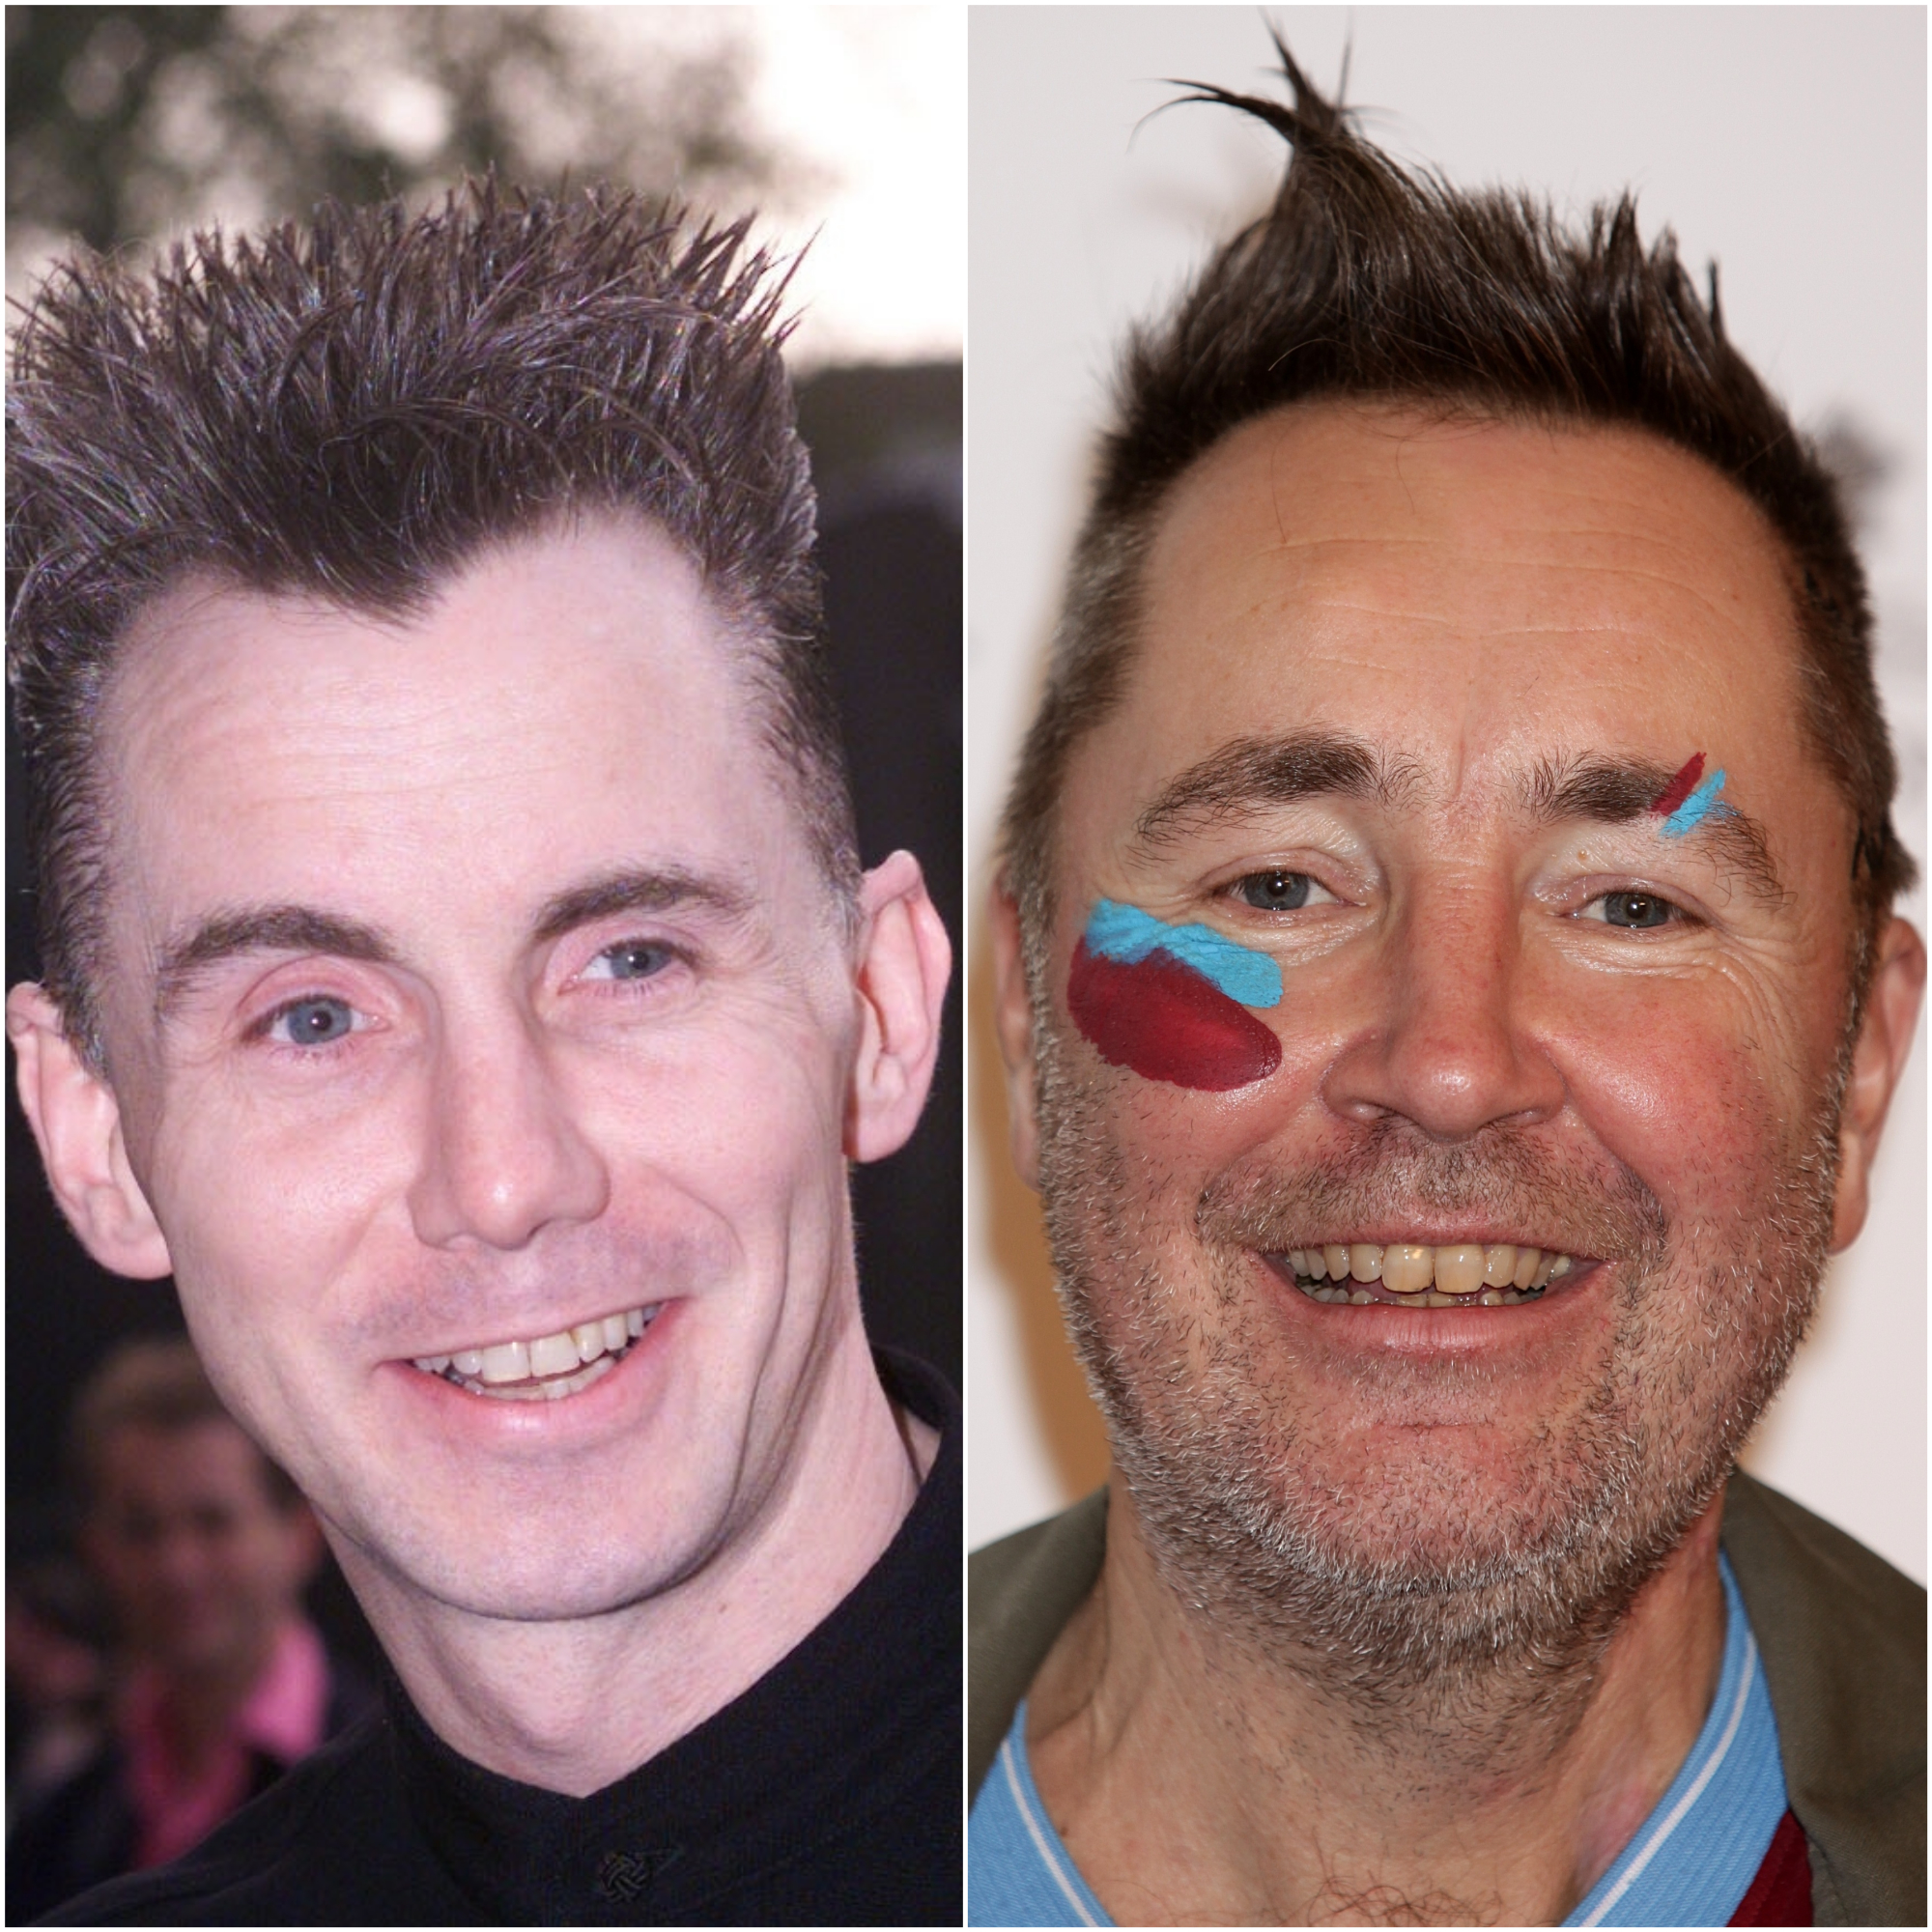 Gary Rhodes (left) was sometimes mistaken for violinist Nigel Kennedy due to their similar hairstyle (PA)